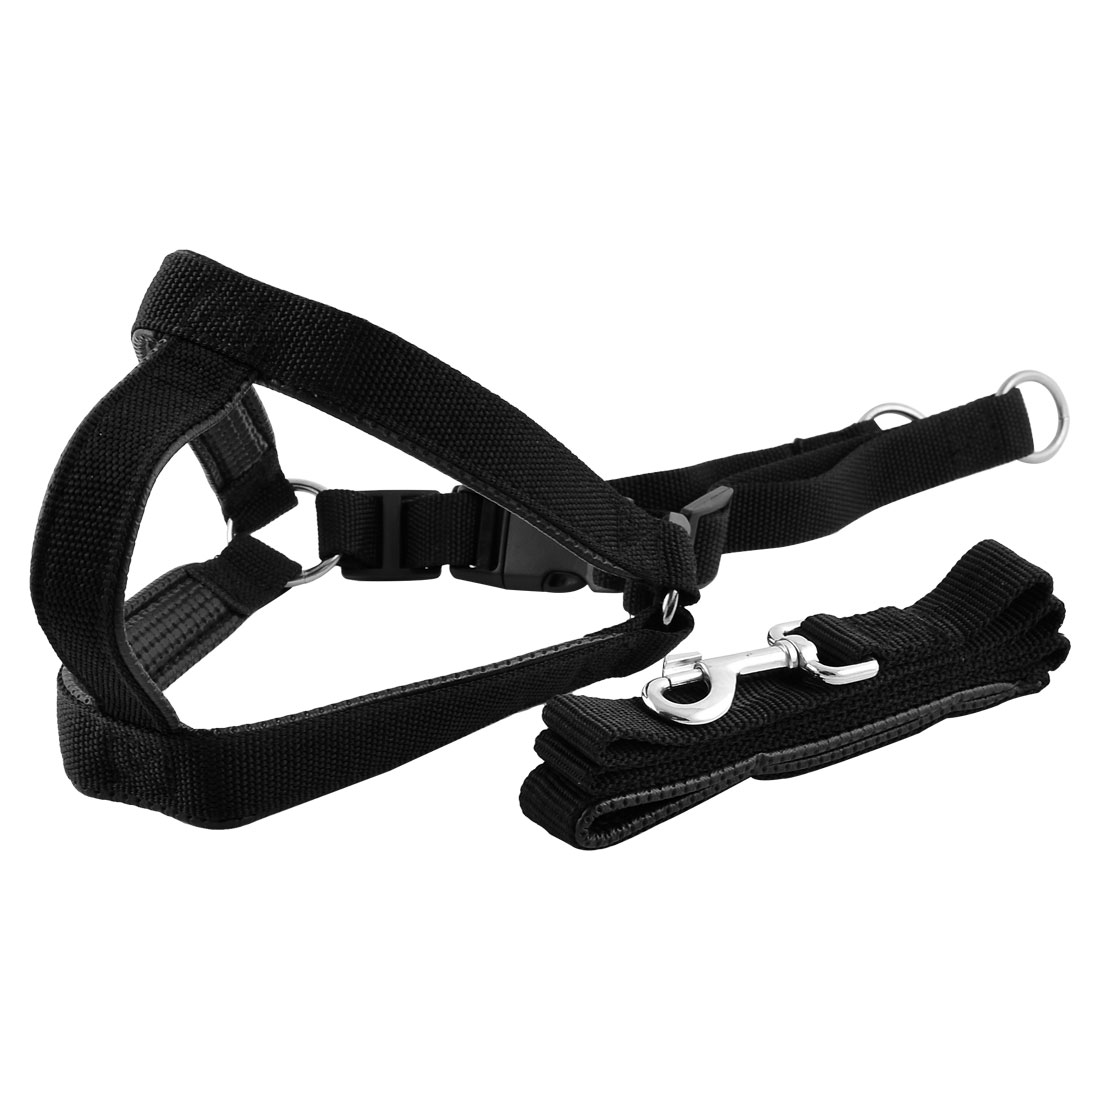 Pet Dog Puppy Nylon Adjustable Belt Band Release Buckle Harness Set Black